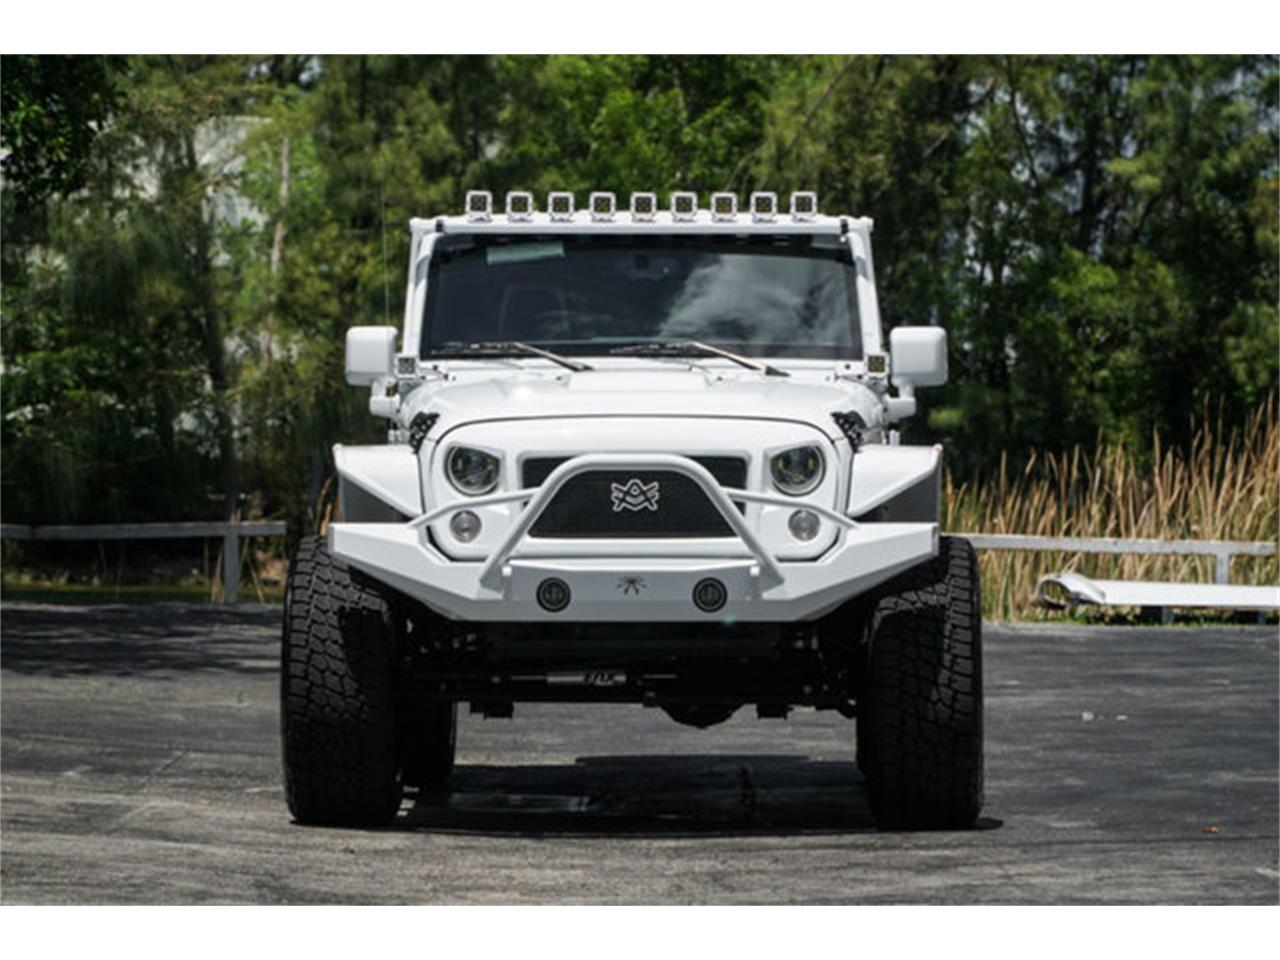 Large Picture of 2018 Jeep Wrangler located in Miami Florida - $51,900.00 - Q4VB